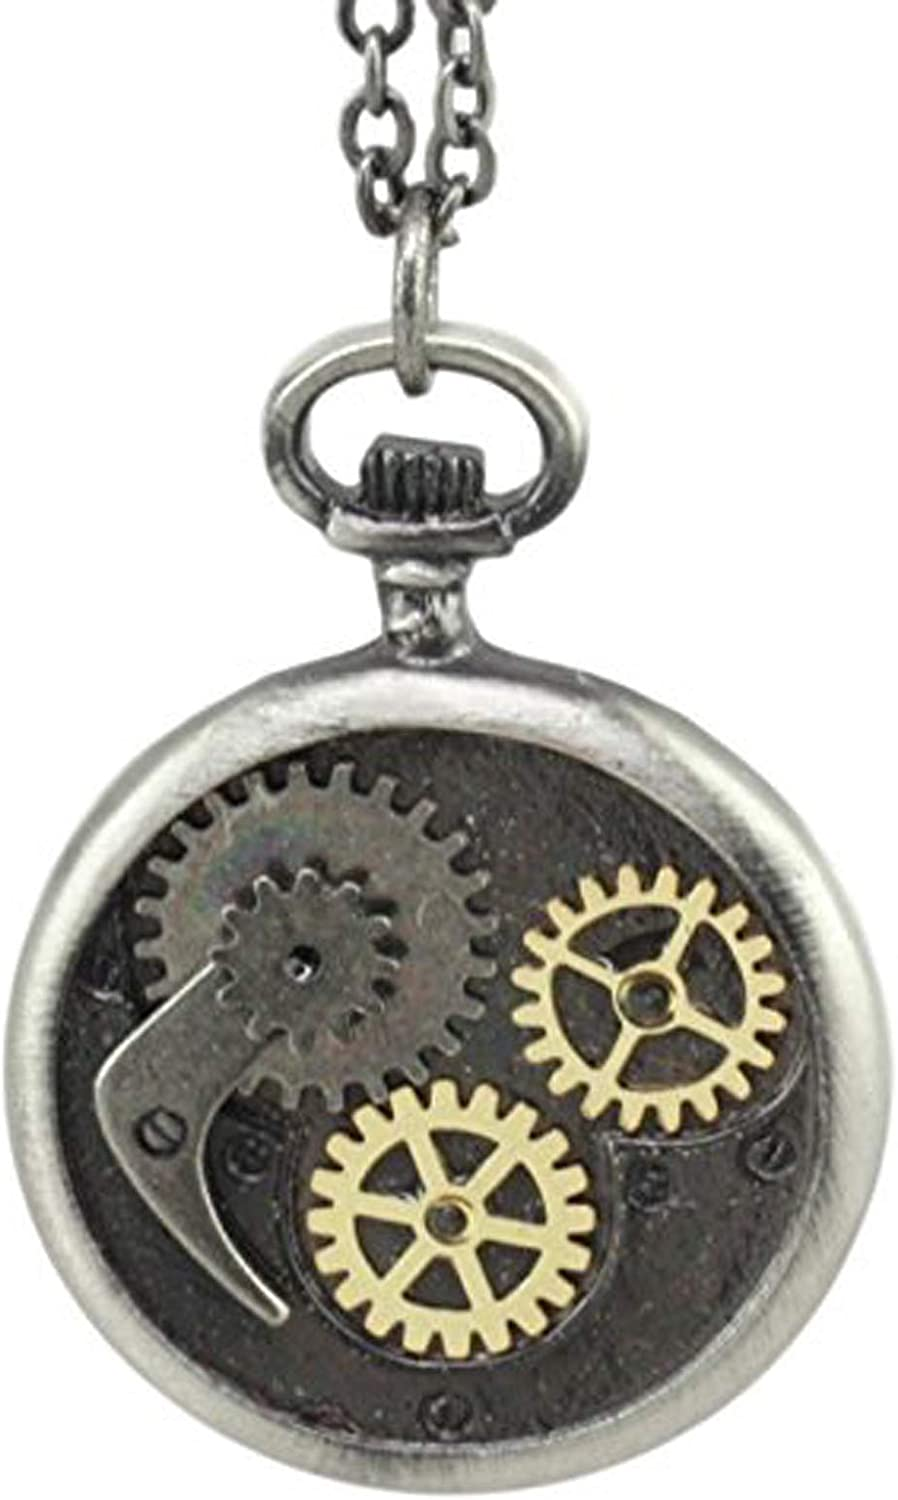 Ebros Steampunk Scythe and Gears Clockwork Design Round Pewter Necklace Alloy Pendant Jewelry